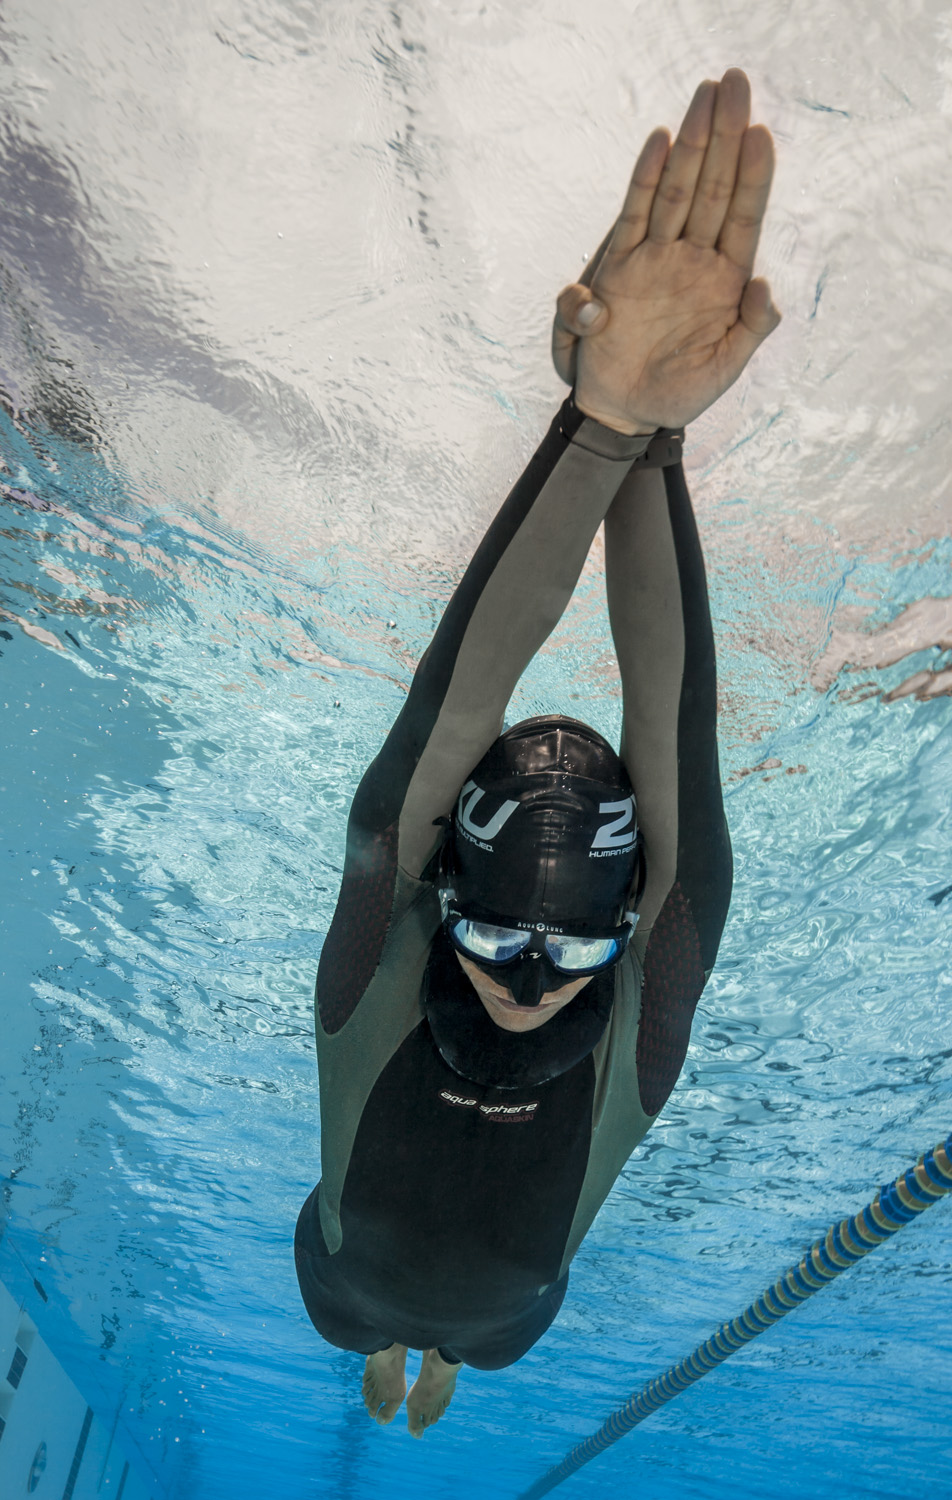 Freediver training in pool for dynamic with no fins.